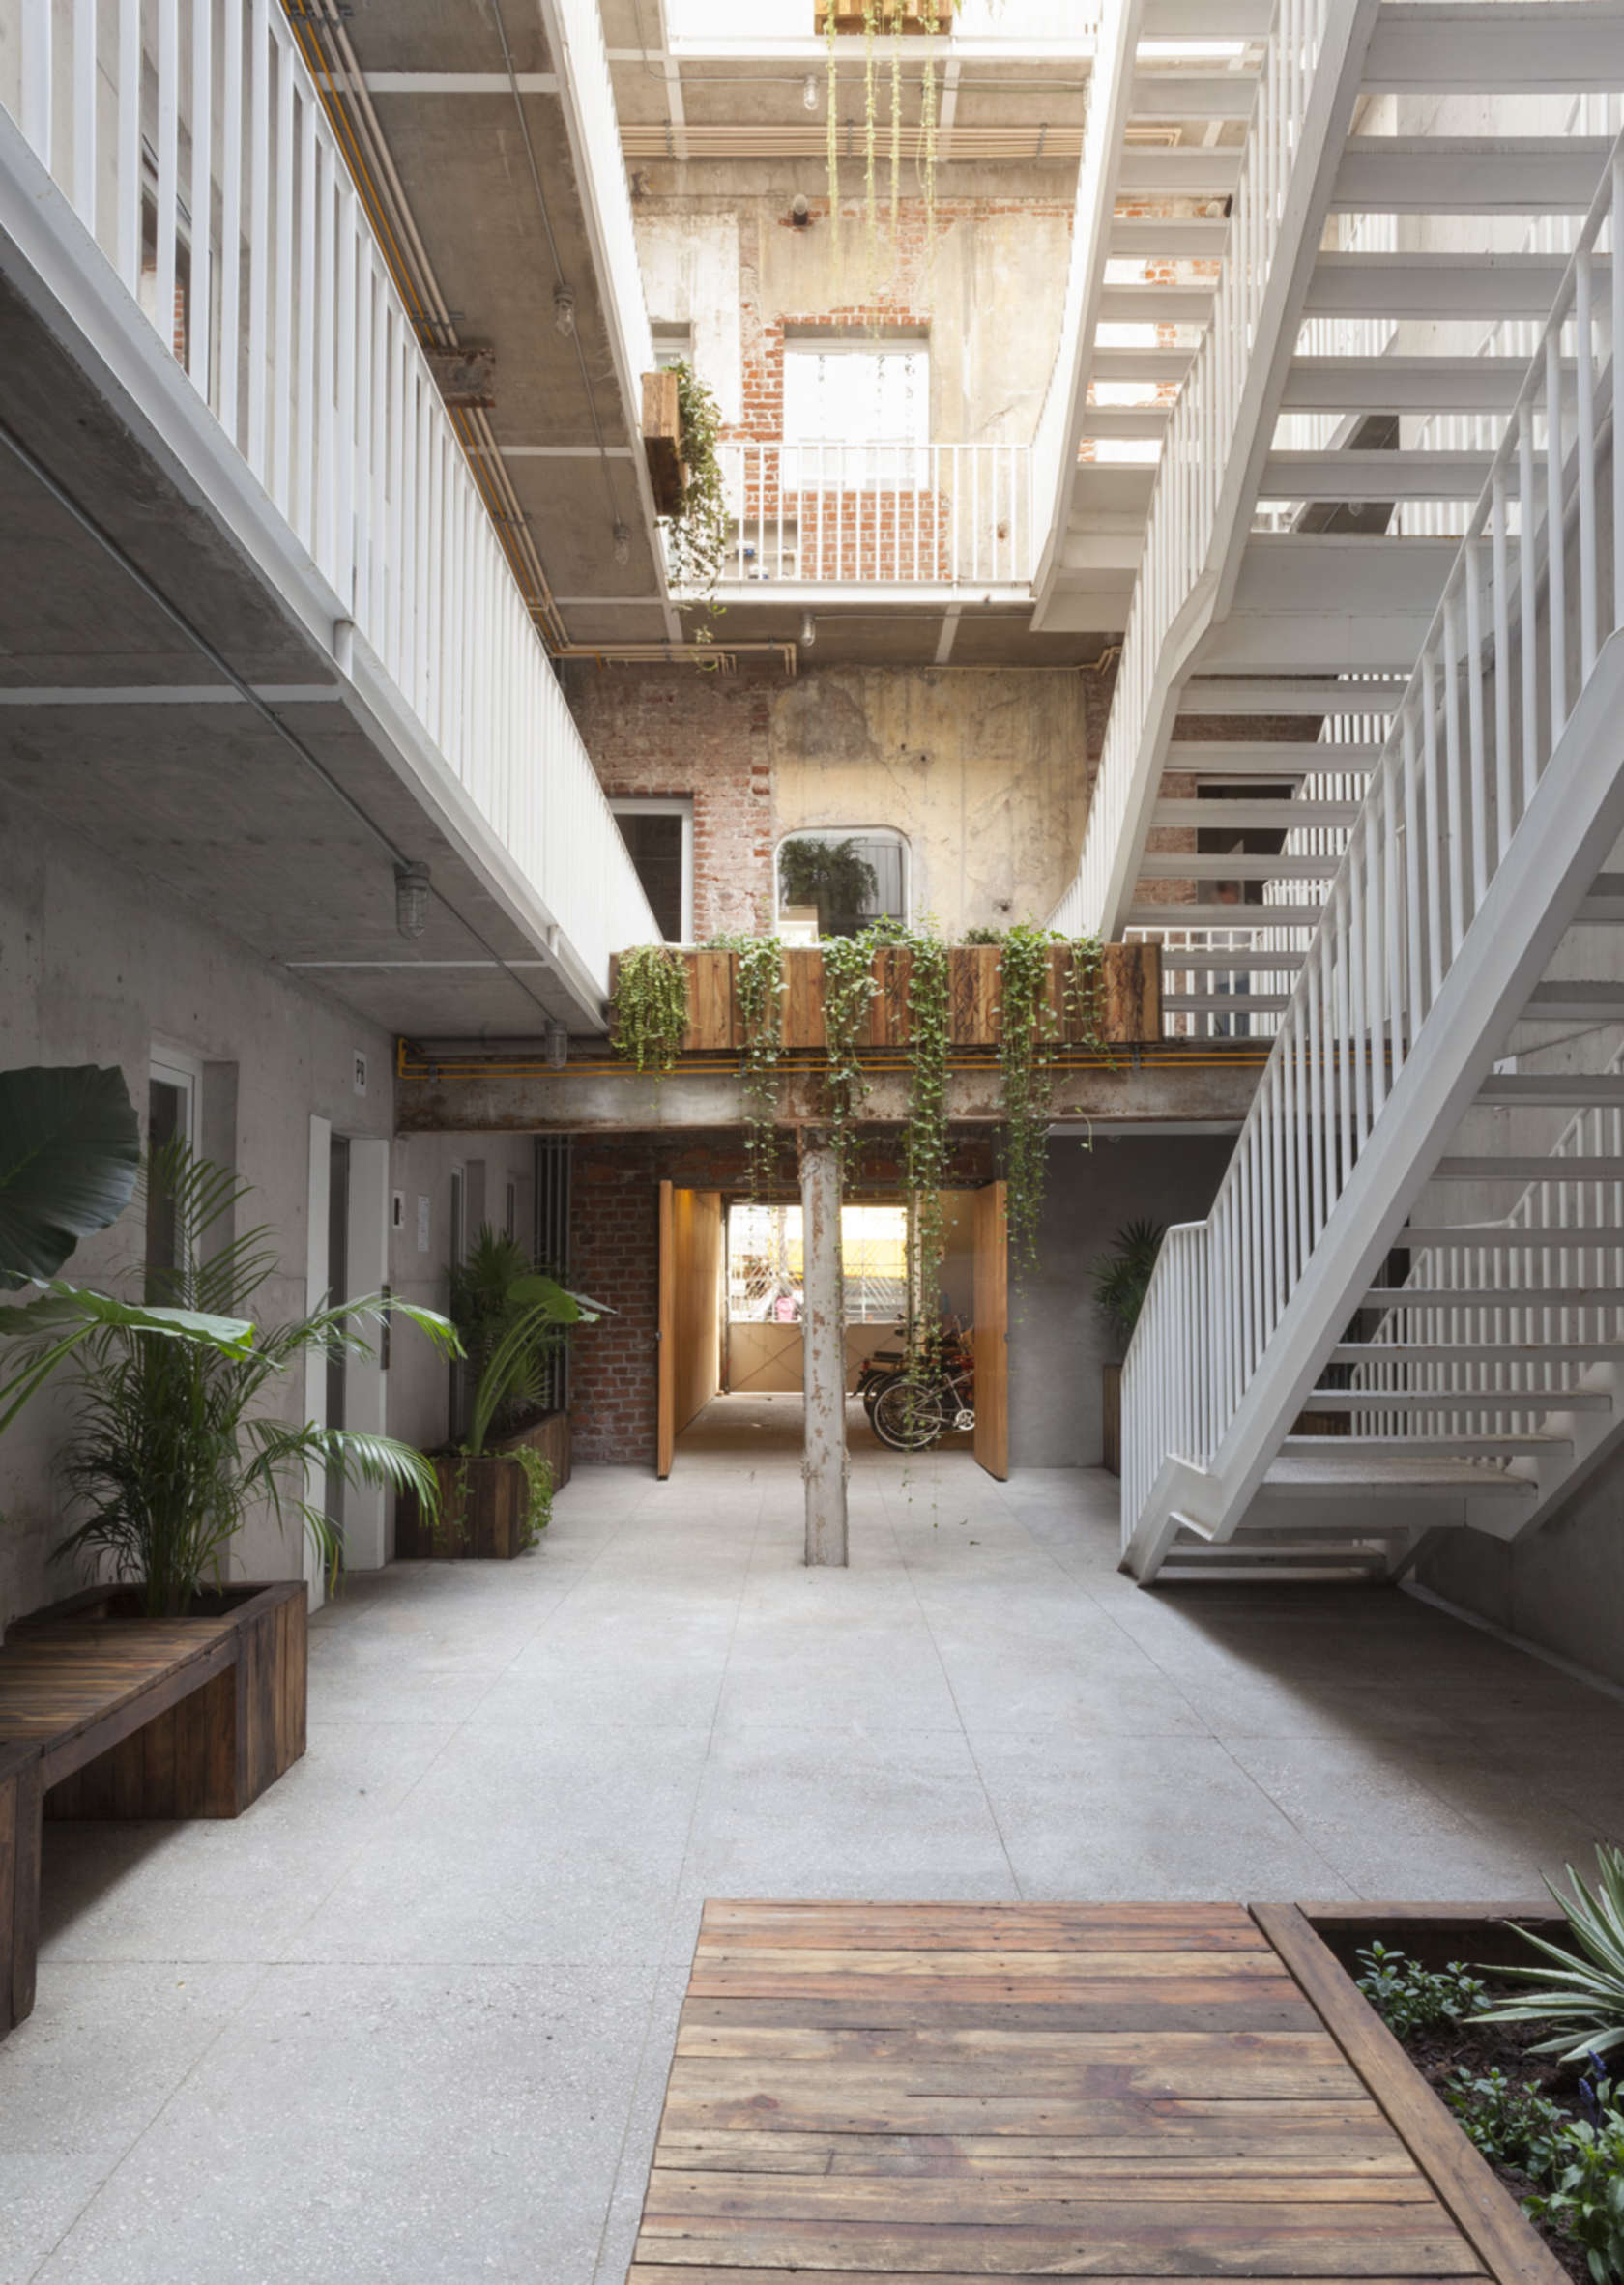 Old And New Architecture Design Relationship abandoned mexico city building gets new life as a vibrant mixed